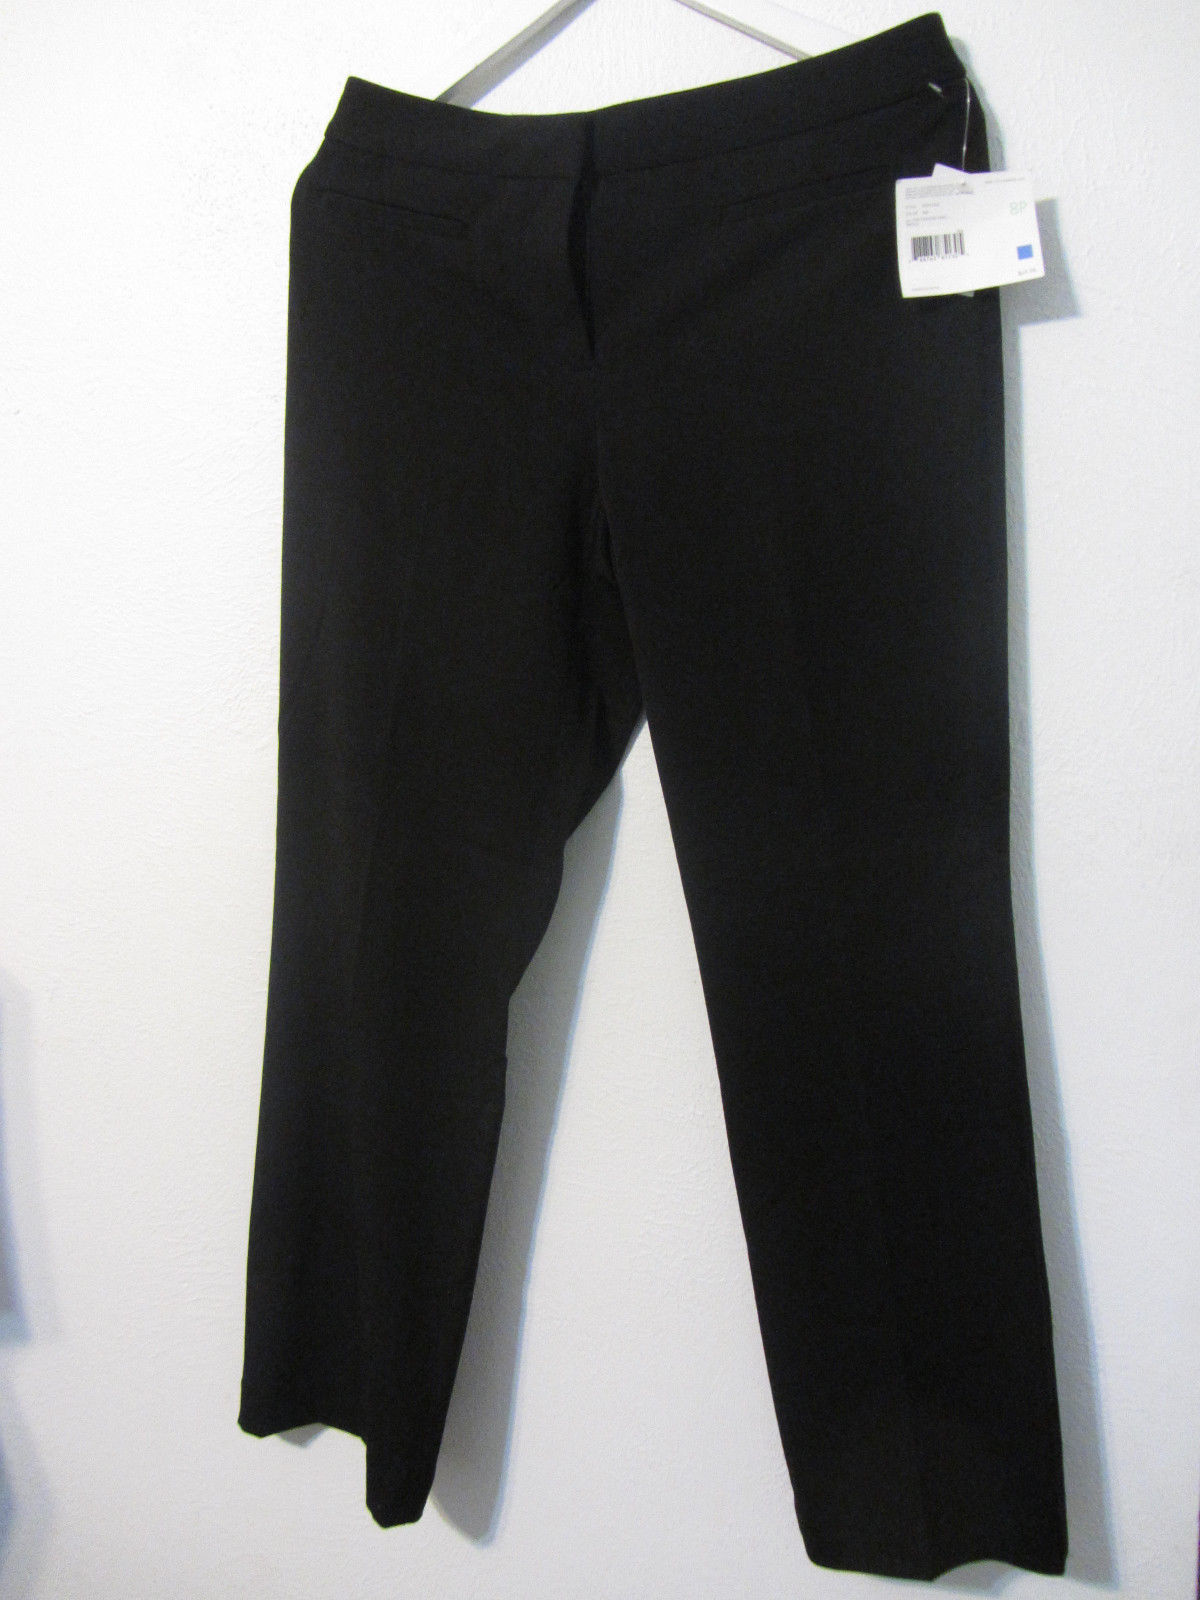 NWT Women's Liz Claiborne Audra tan Black straight leg dress pants ~ Size 8